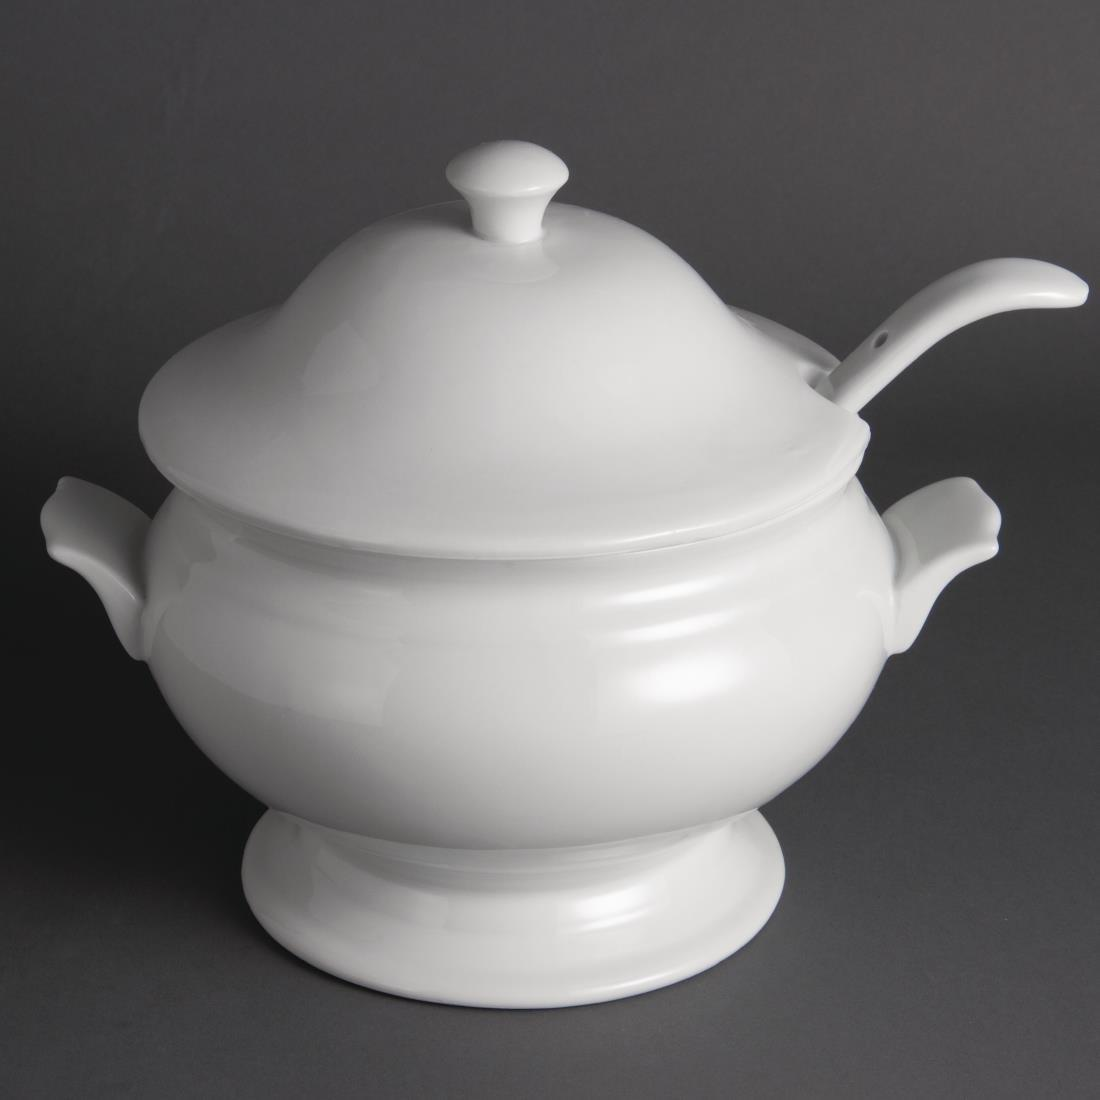 Y094 - Olympia Soup Tureen and Ladle